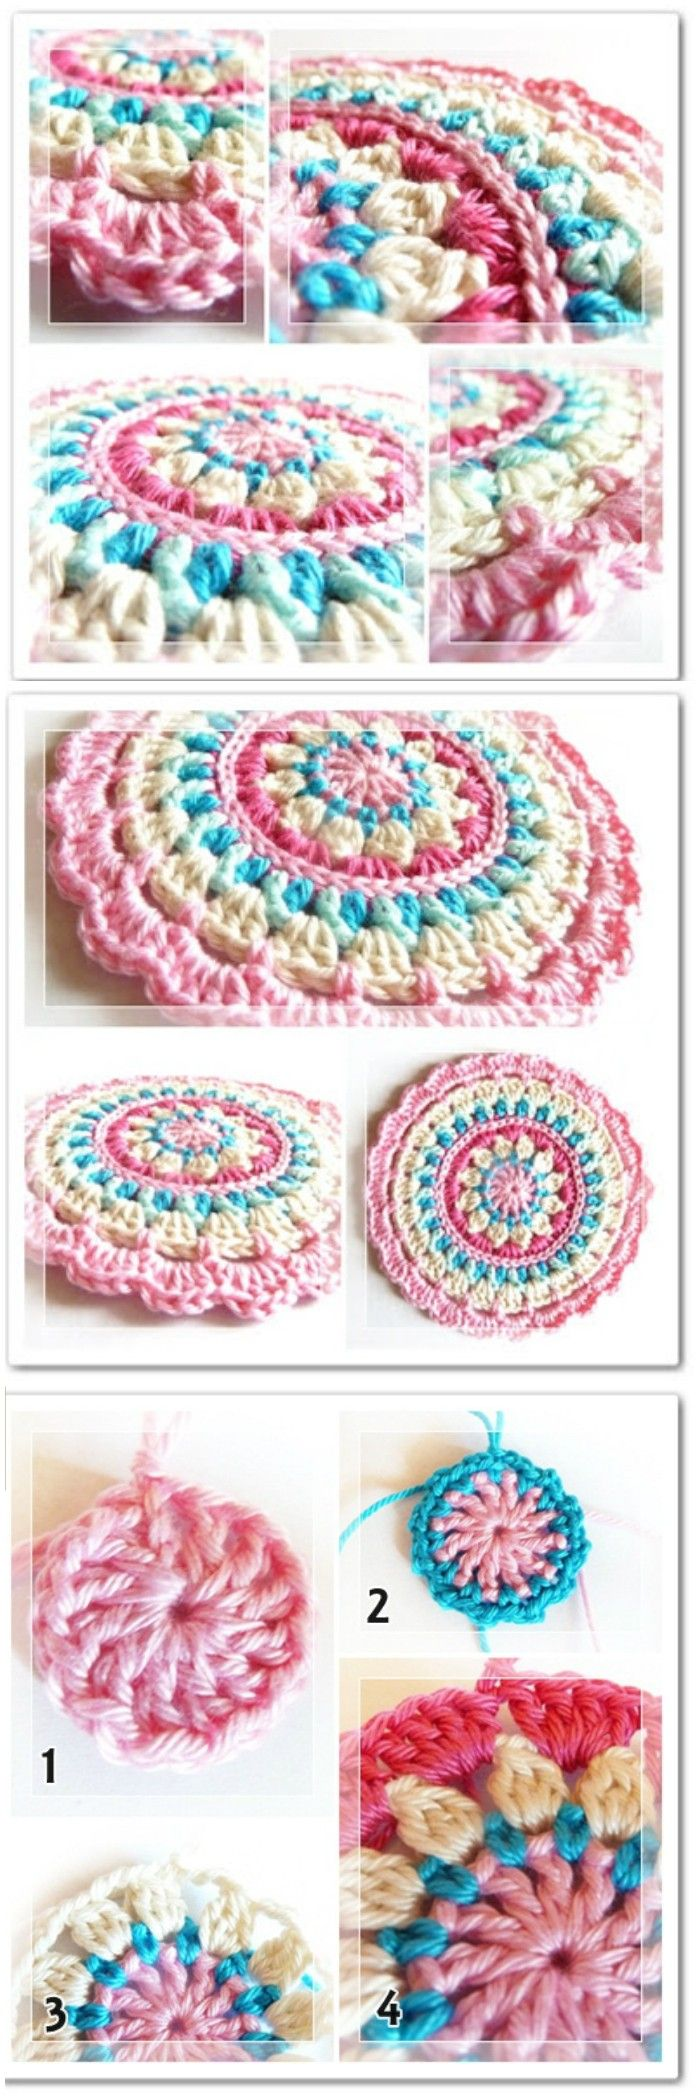 We are sharing here free crochet mandala patterns that differ from each other in style, geometric patterns and in color schemes!Crochet Little Spring Mandala